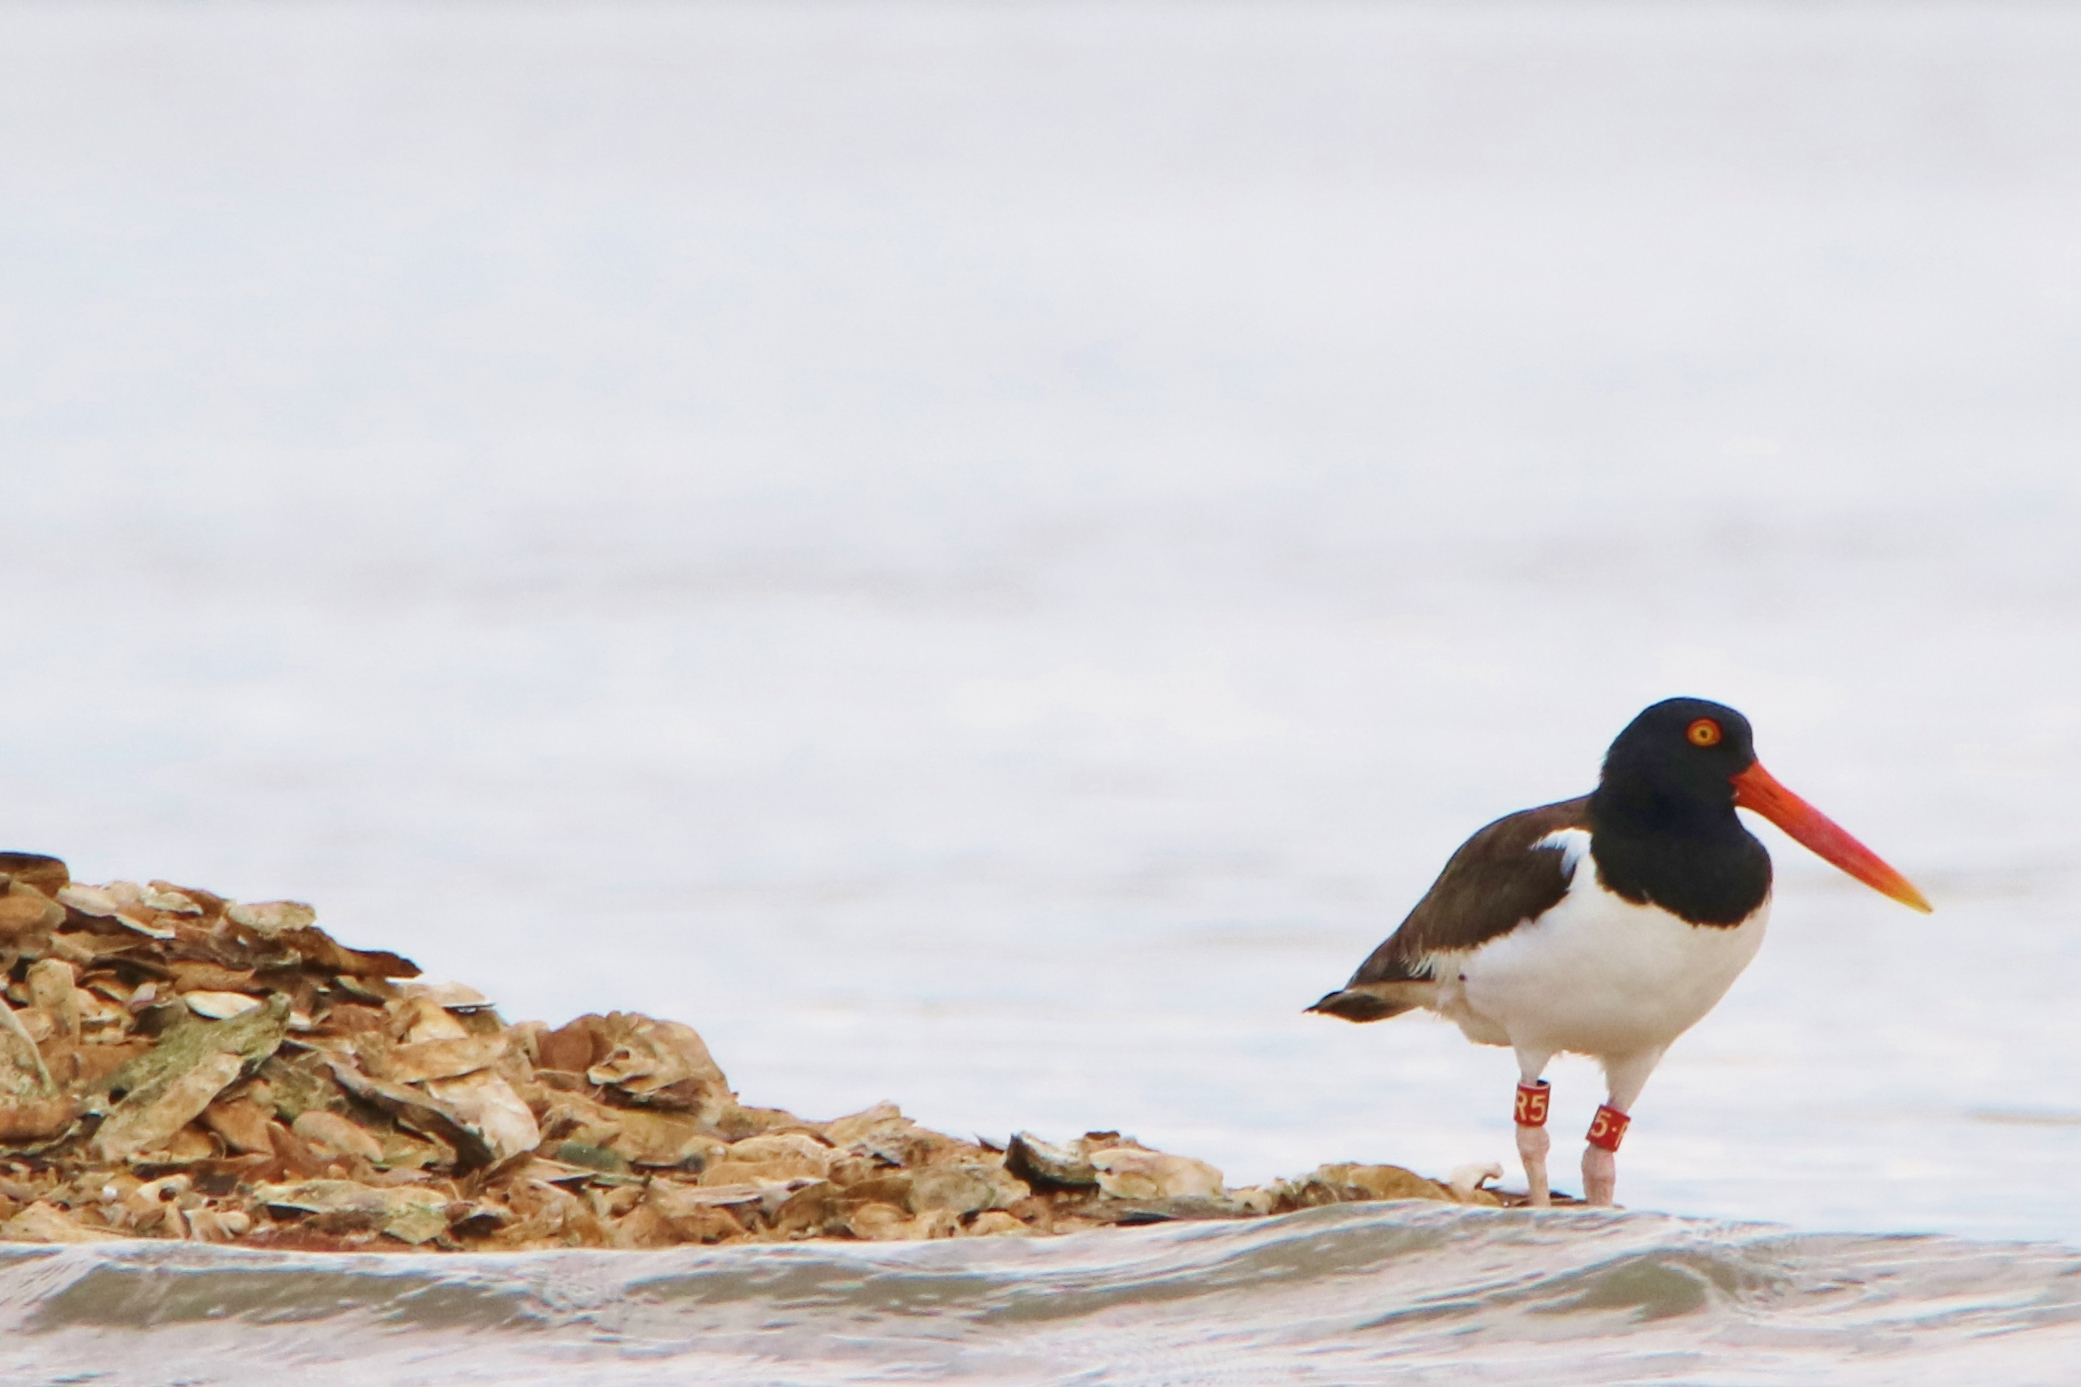 An American oystercatcher stands on the edges of an oyster reef.